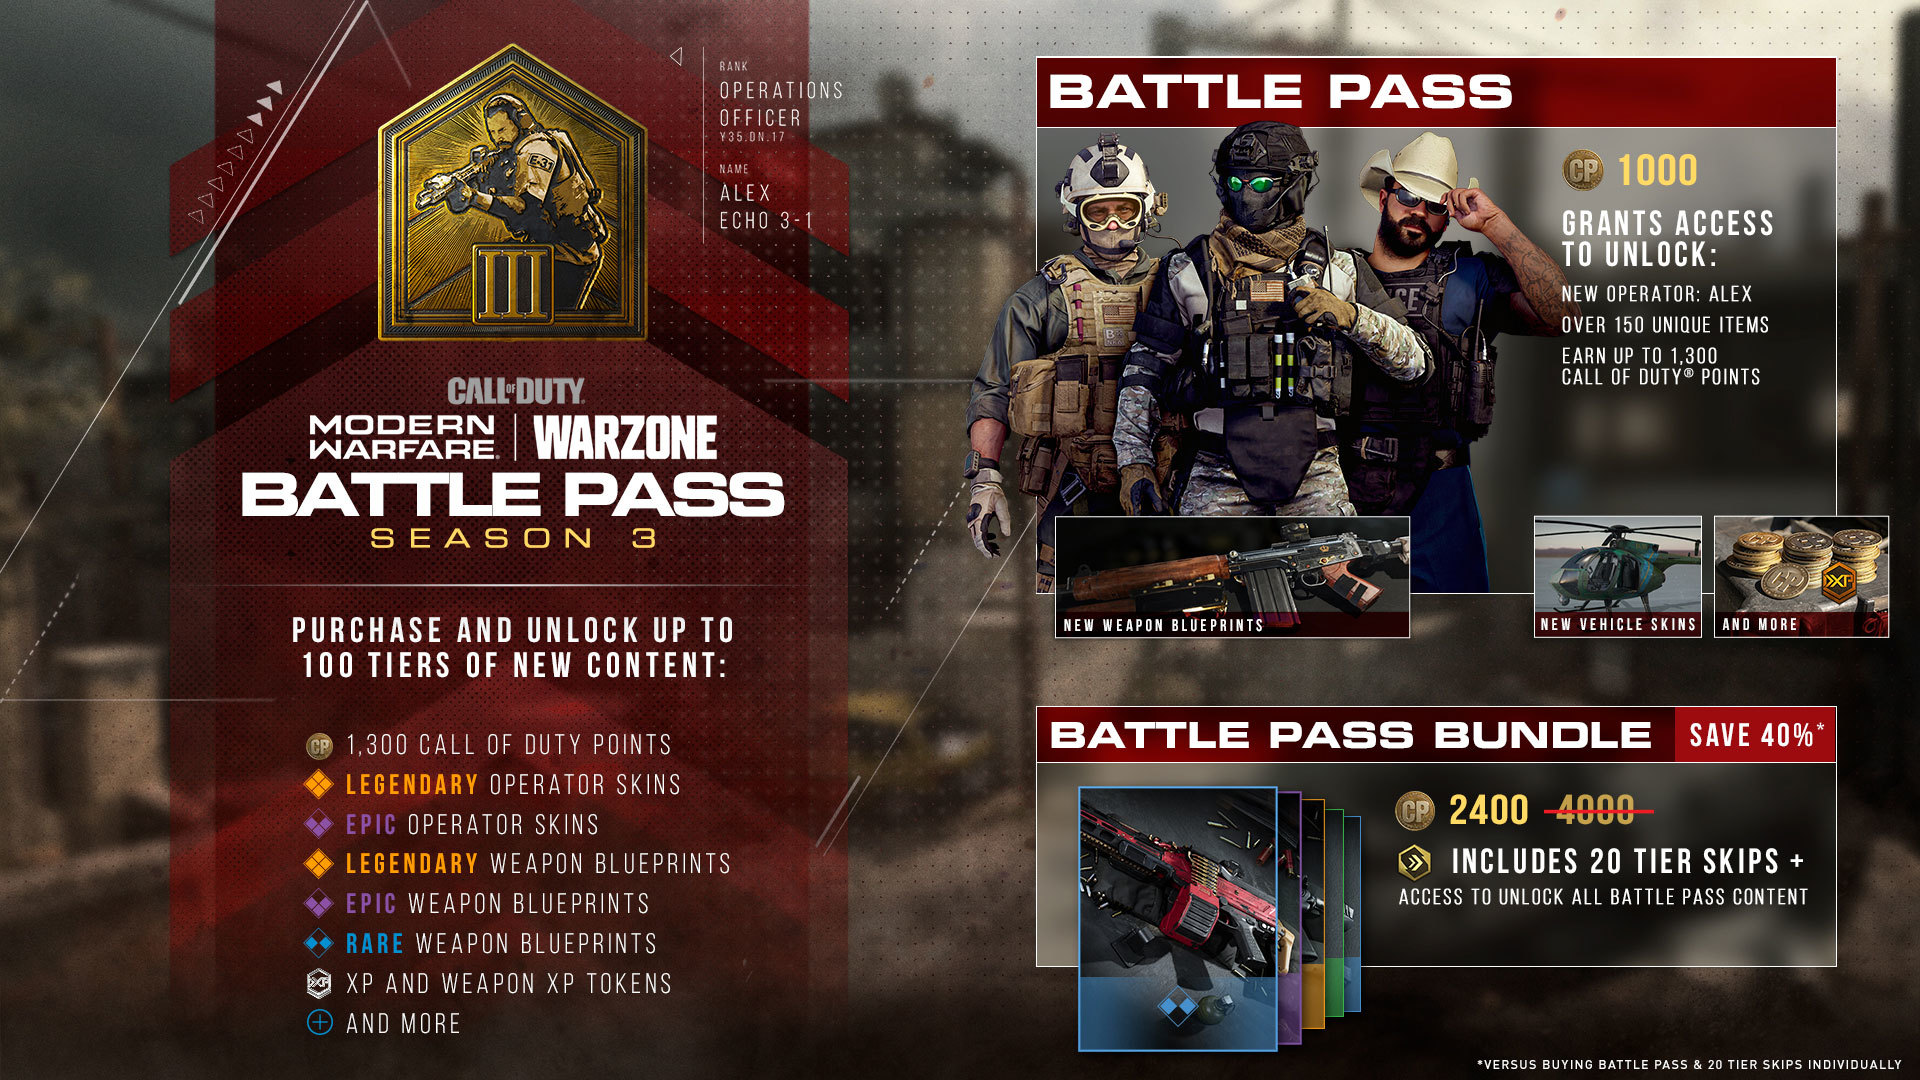 Modern Warfare Season 3 launched on April 7, adding new maps, weapons, modes and another fresh Battle Pass.